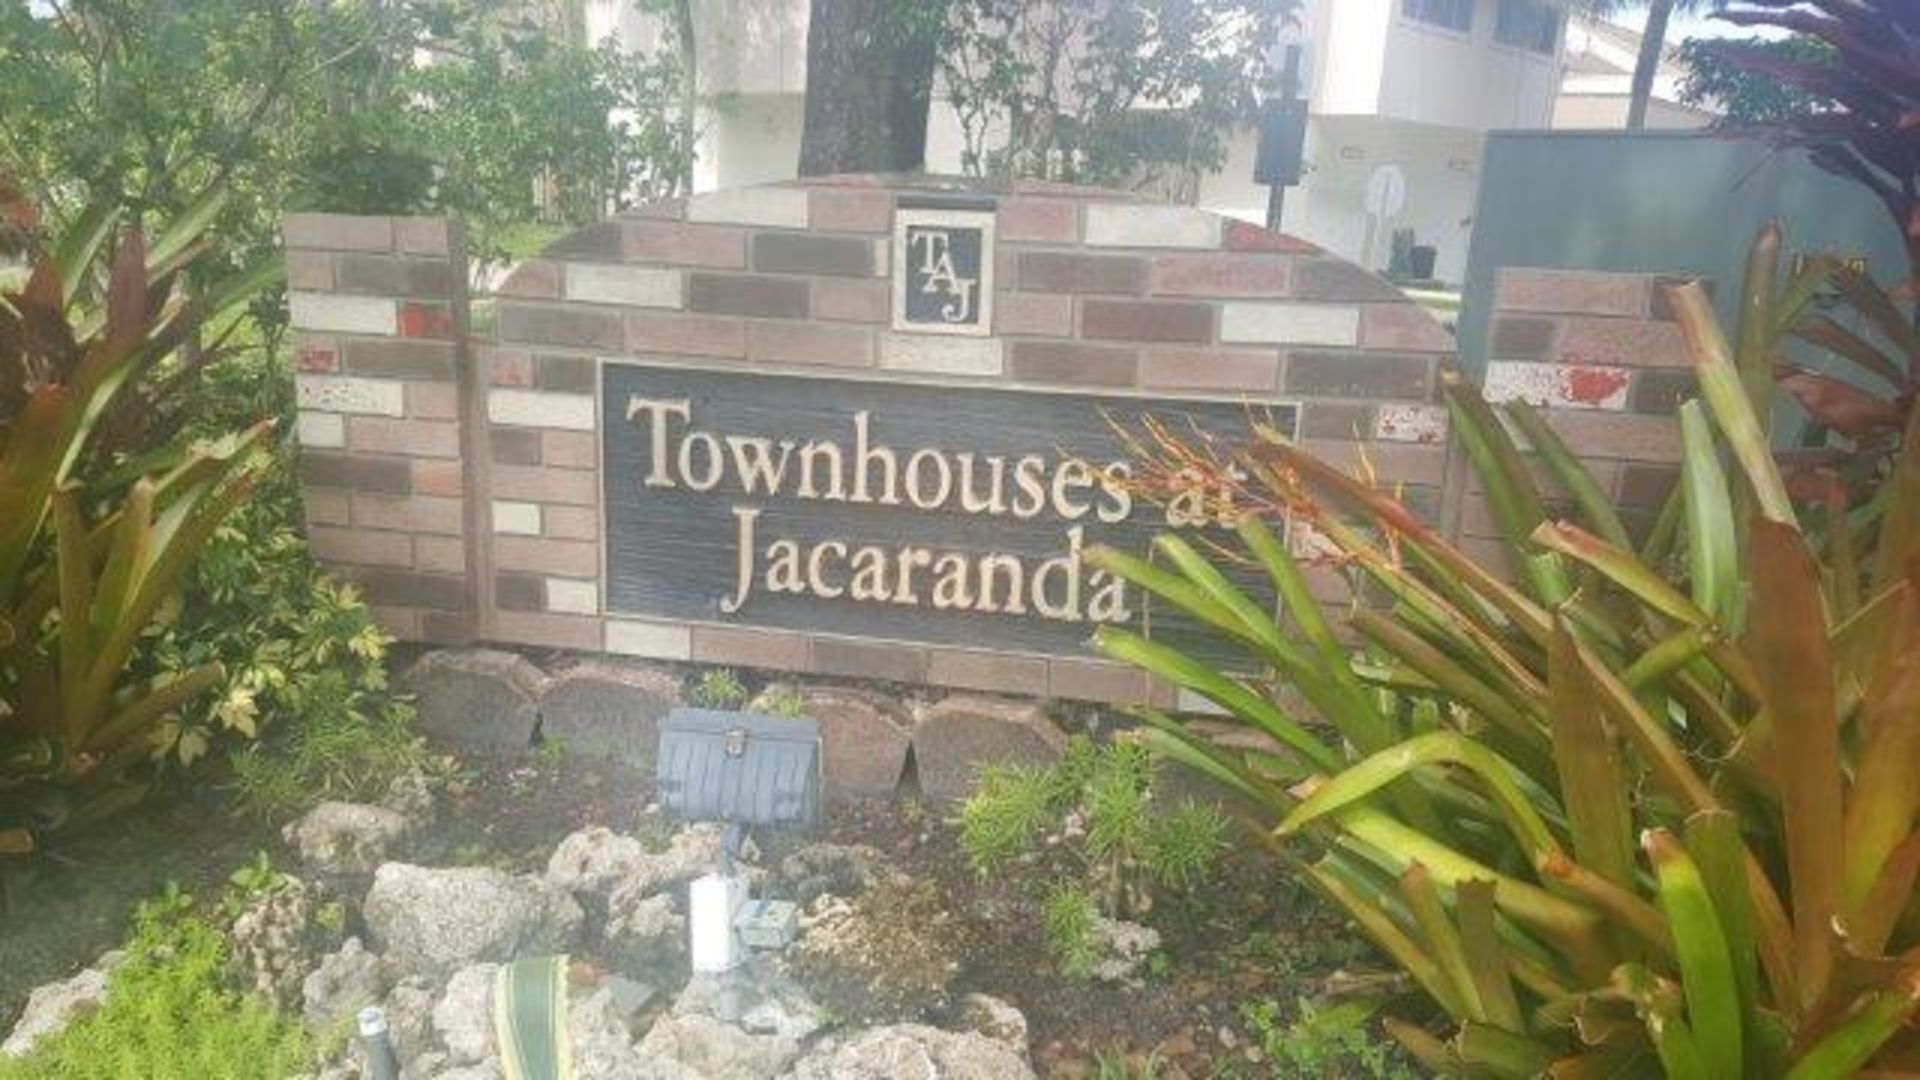 For Sale Townhouses at Jacaranda 8187 NW 8th Mnr #7, Plantation, FL